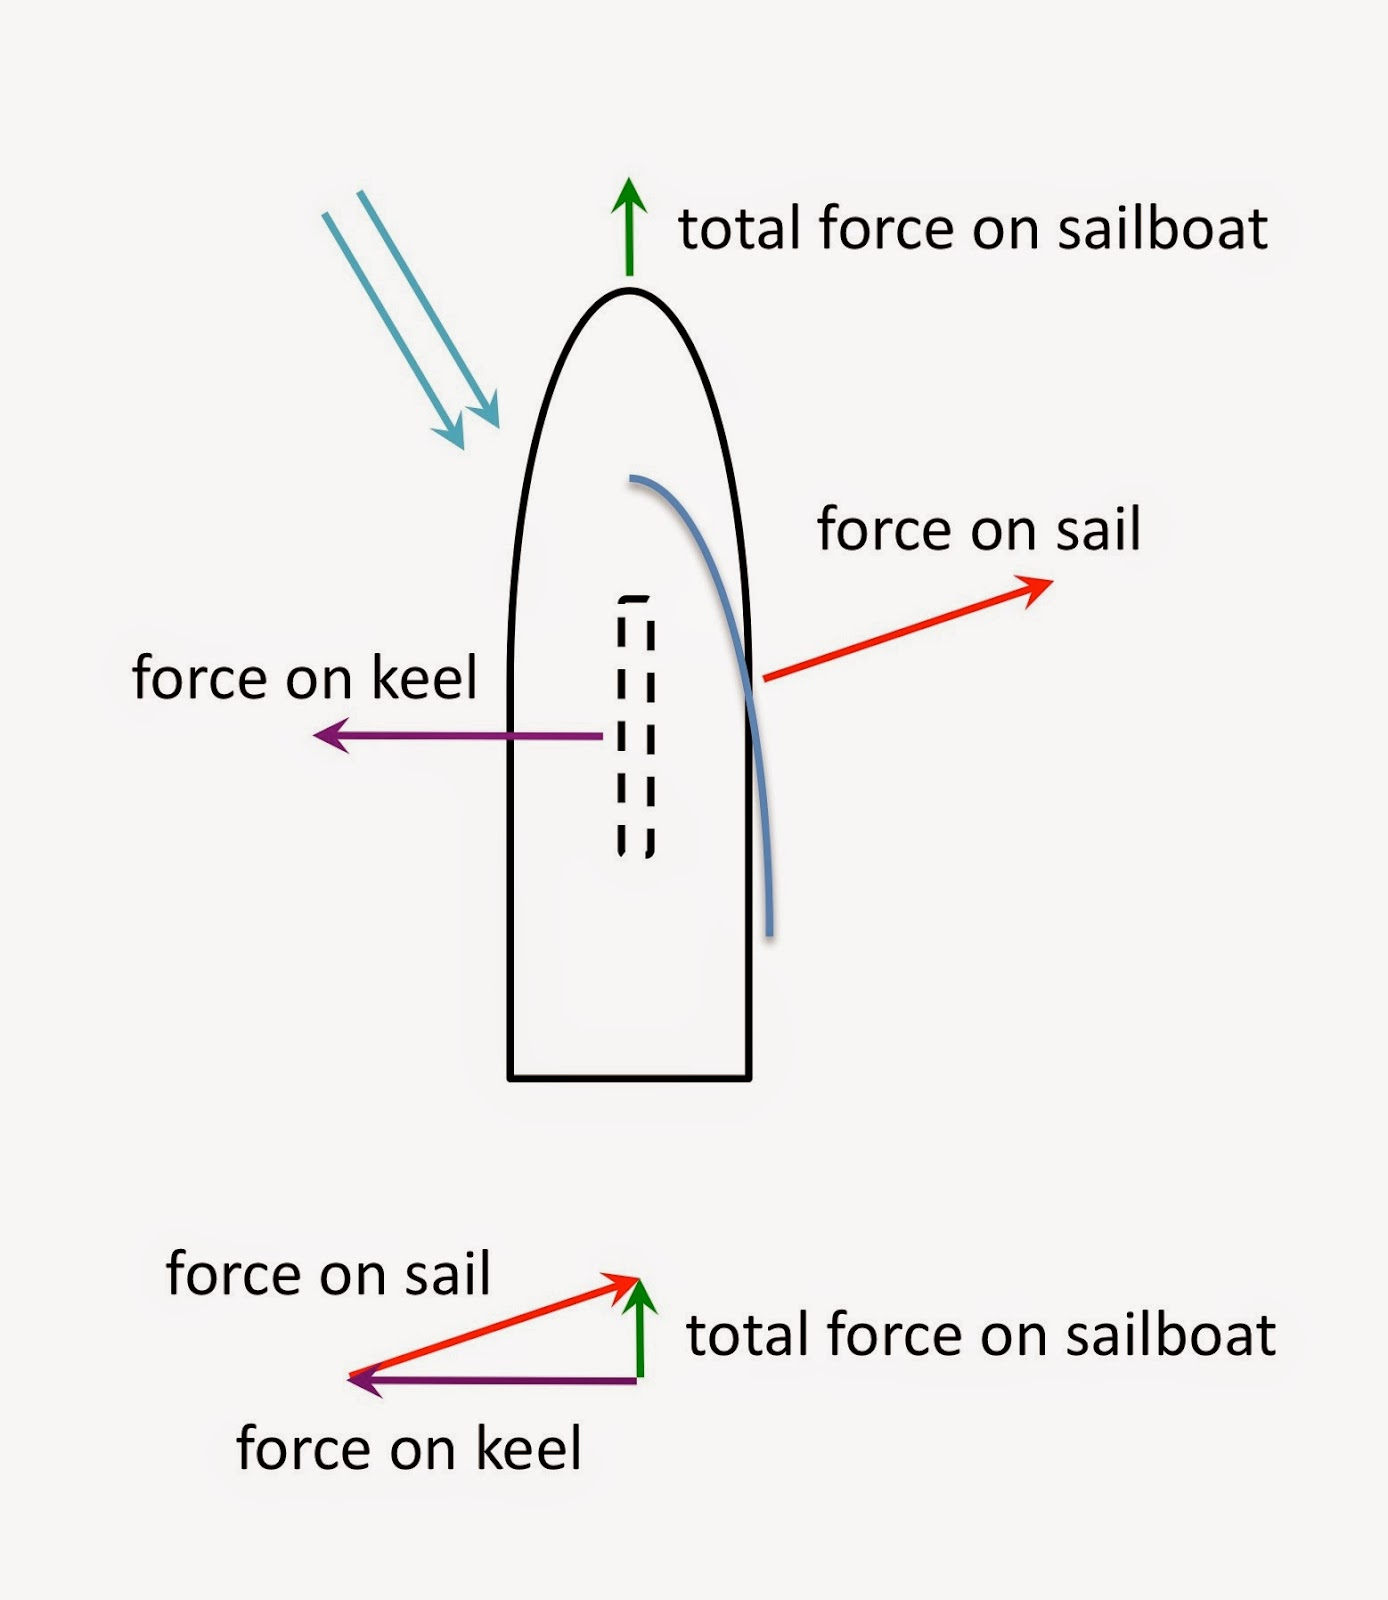 hight resolution of forces acting on a sailboat cancel each other such that the total force moves the sailboat forward the downward pointing keel is outlined by the dashed